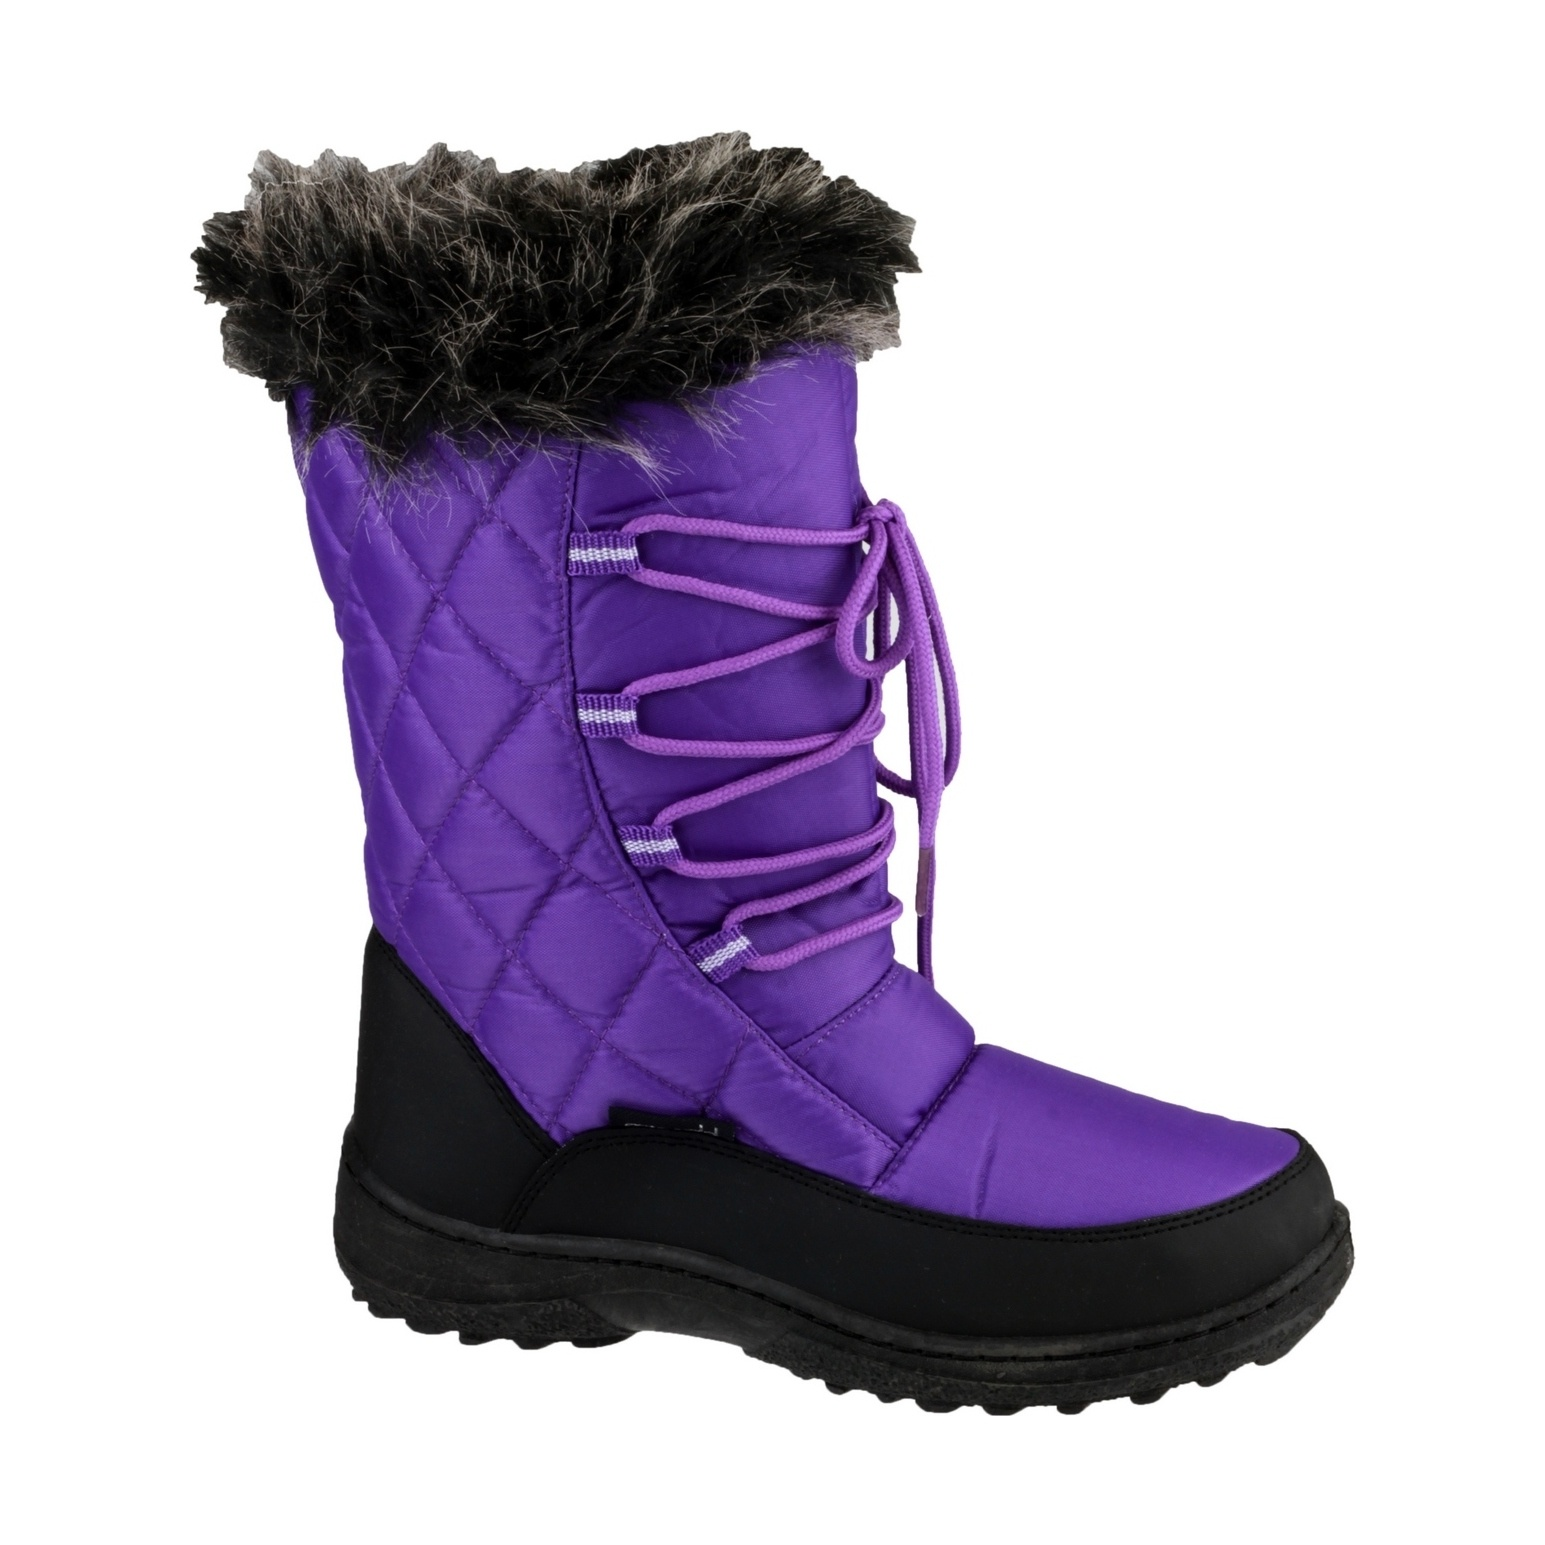 cotswold gale womens waterproof lace up snow boots